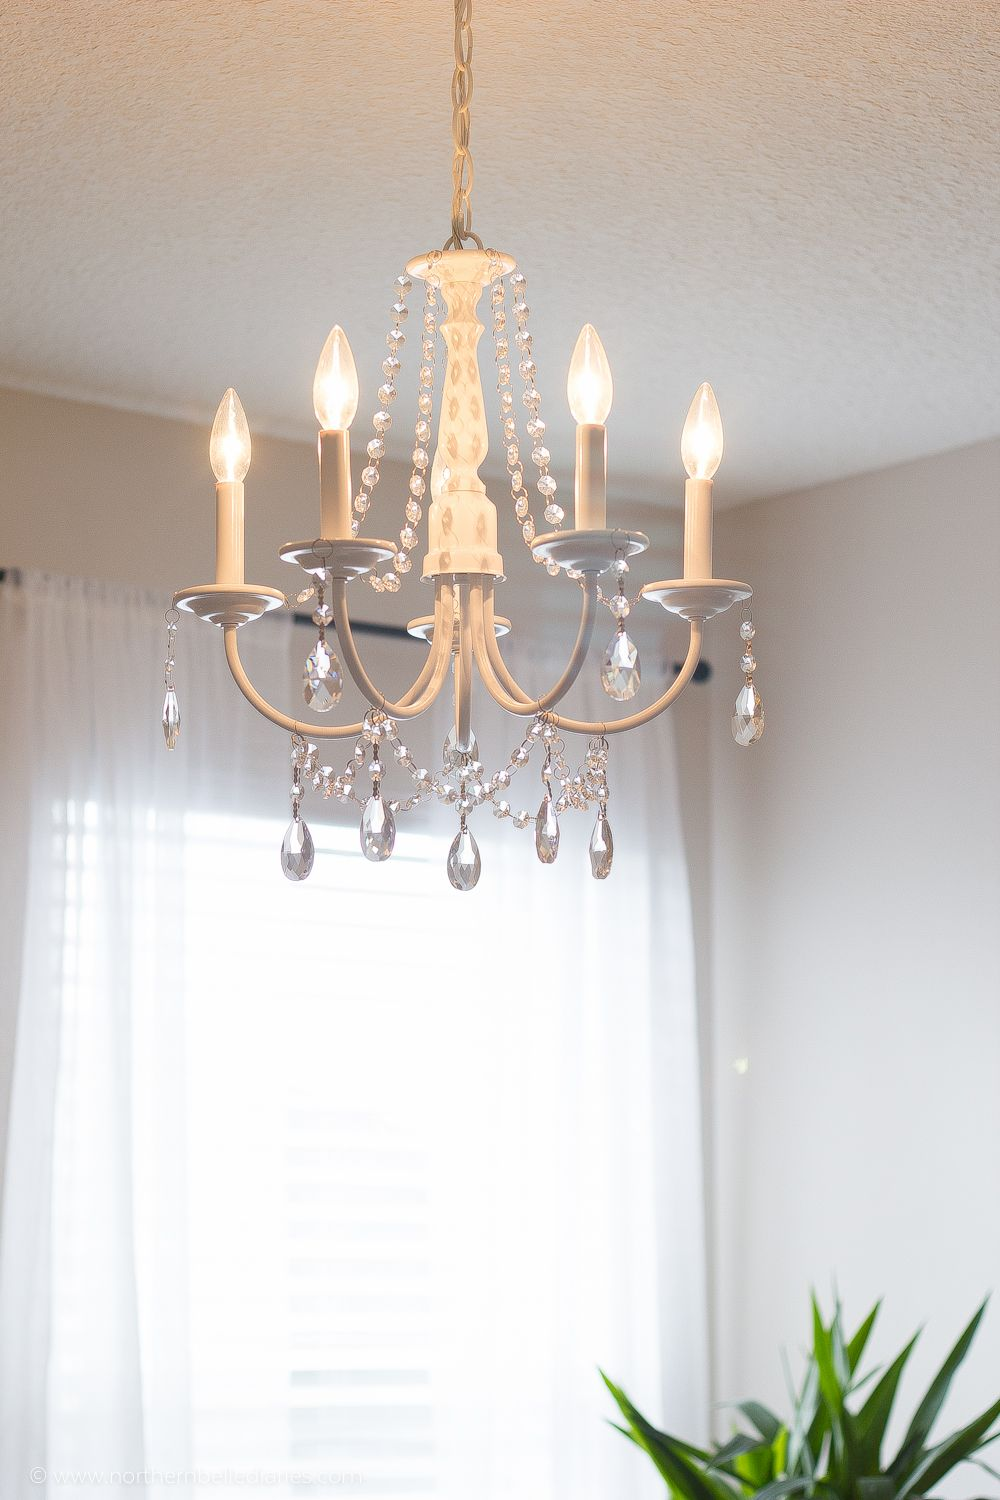 Diy crystal chandelier easy tutorial araa iluminacin y you can make your own diy crystal chandelier this site shows you how aloadofball Gallery